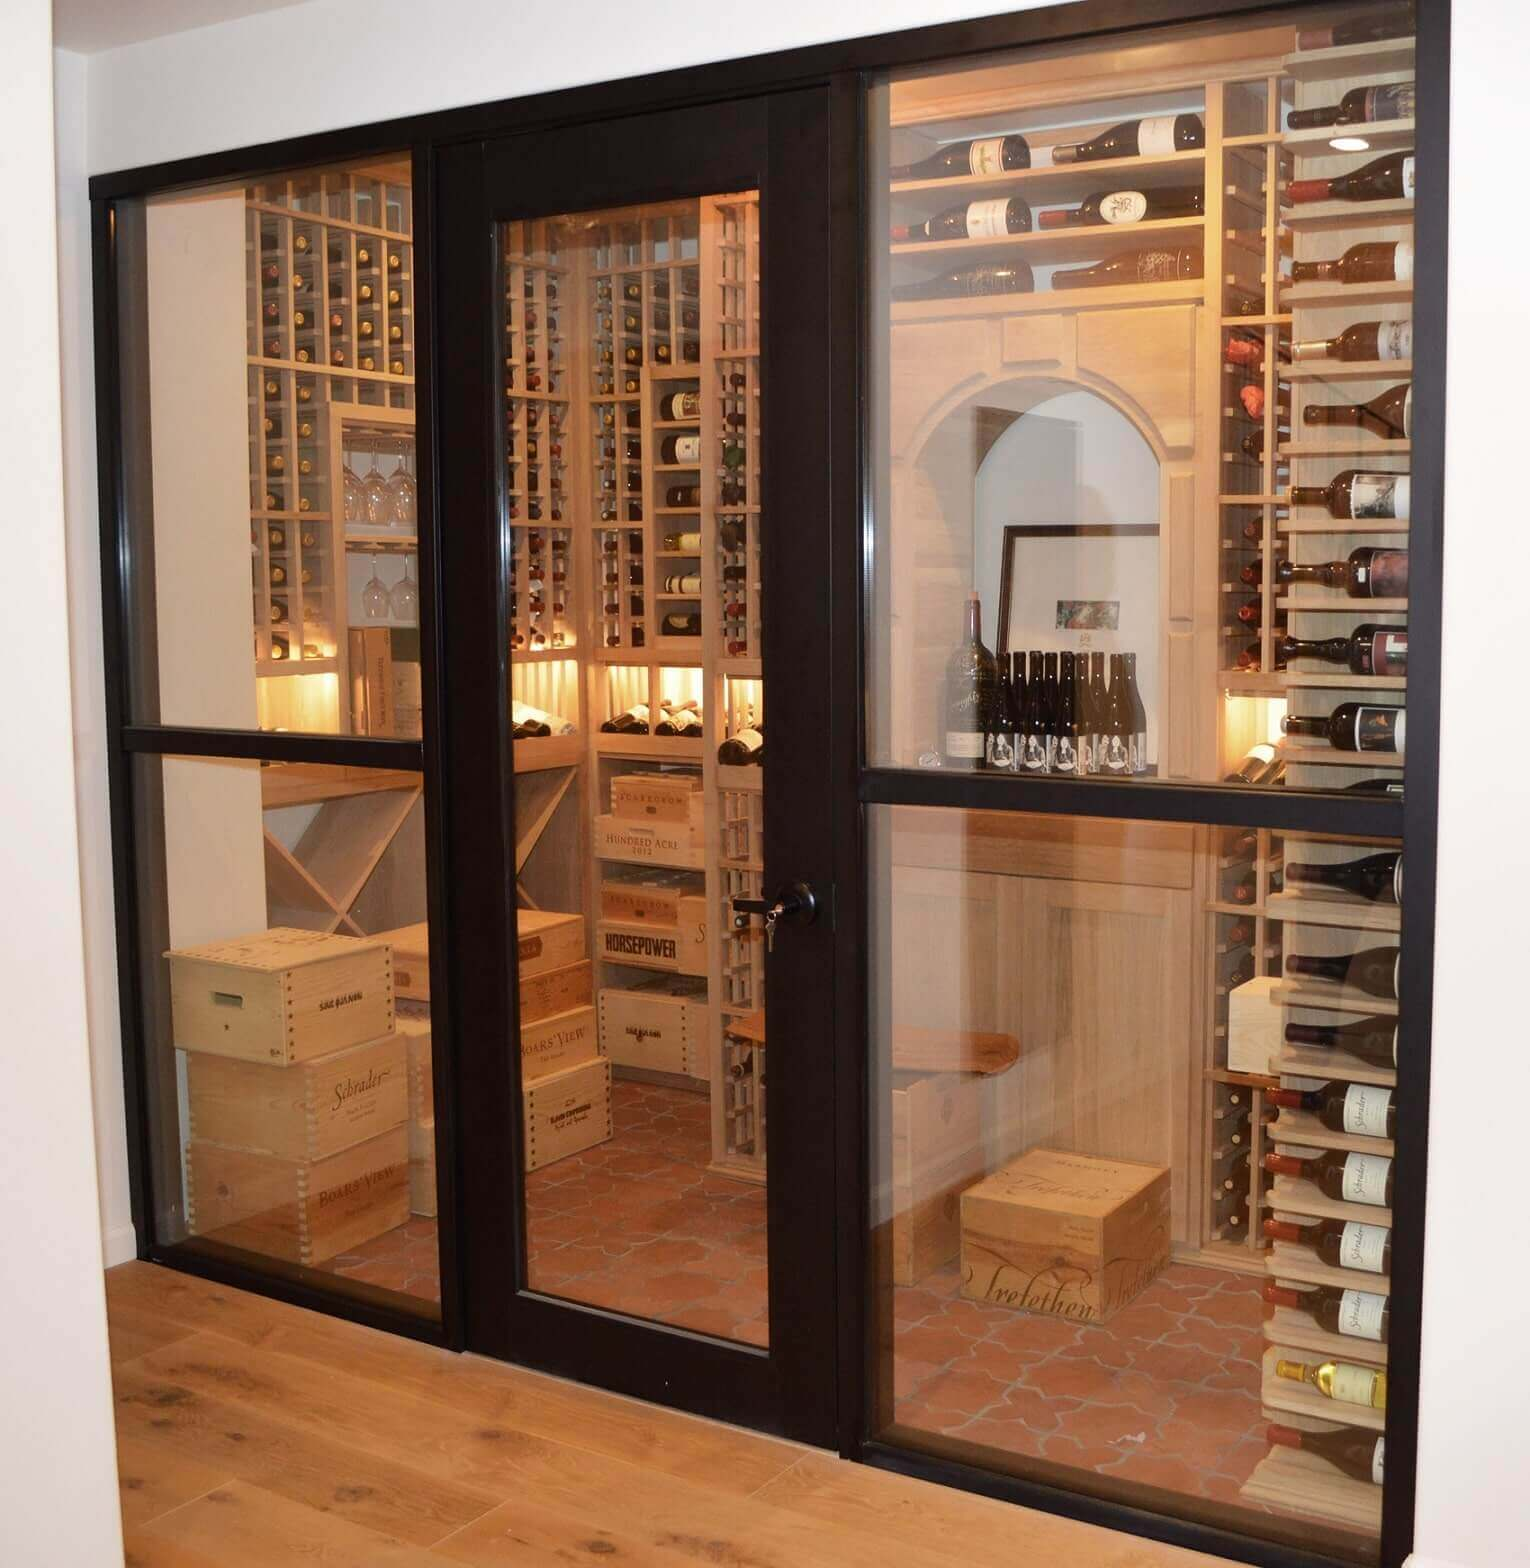 The wine cellar looks magnificent from the outside with the LED lighting turned on in the wine racking system.